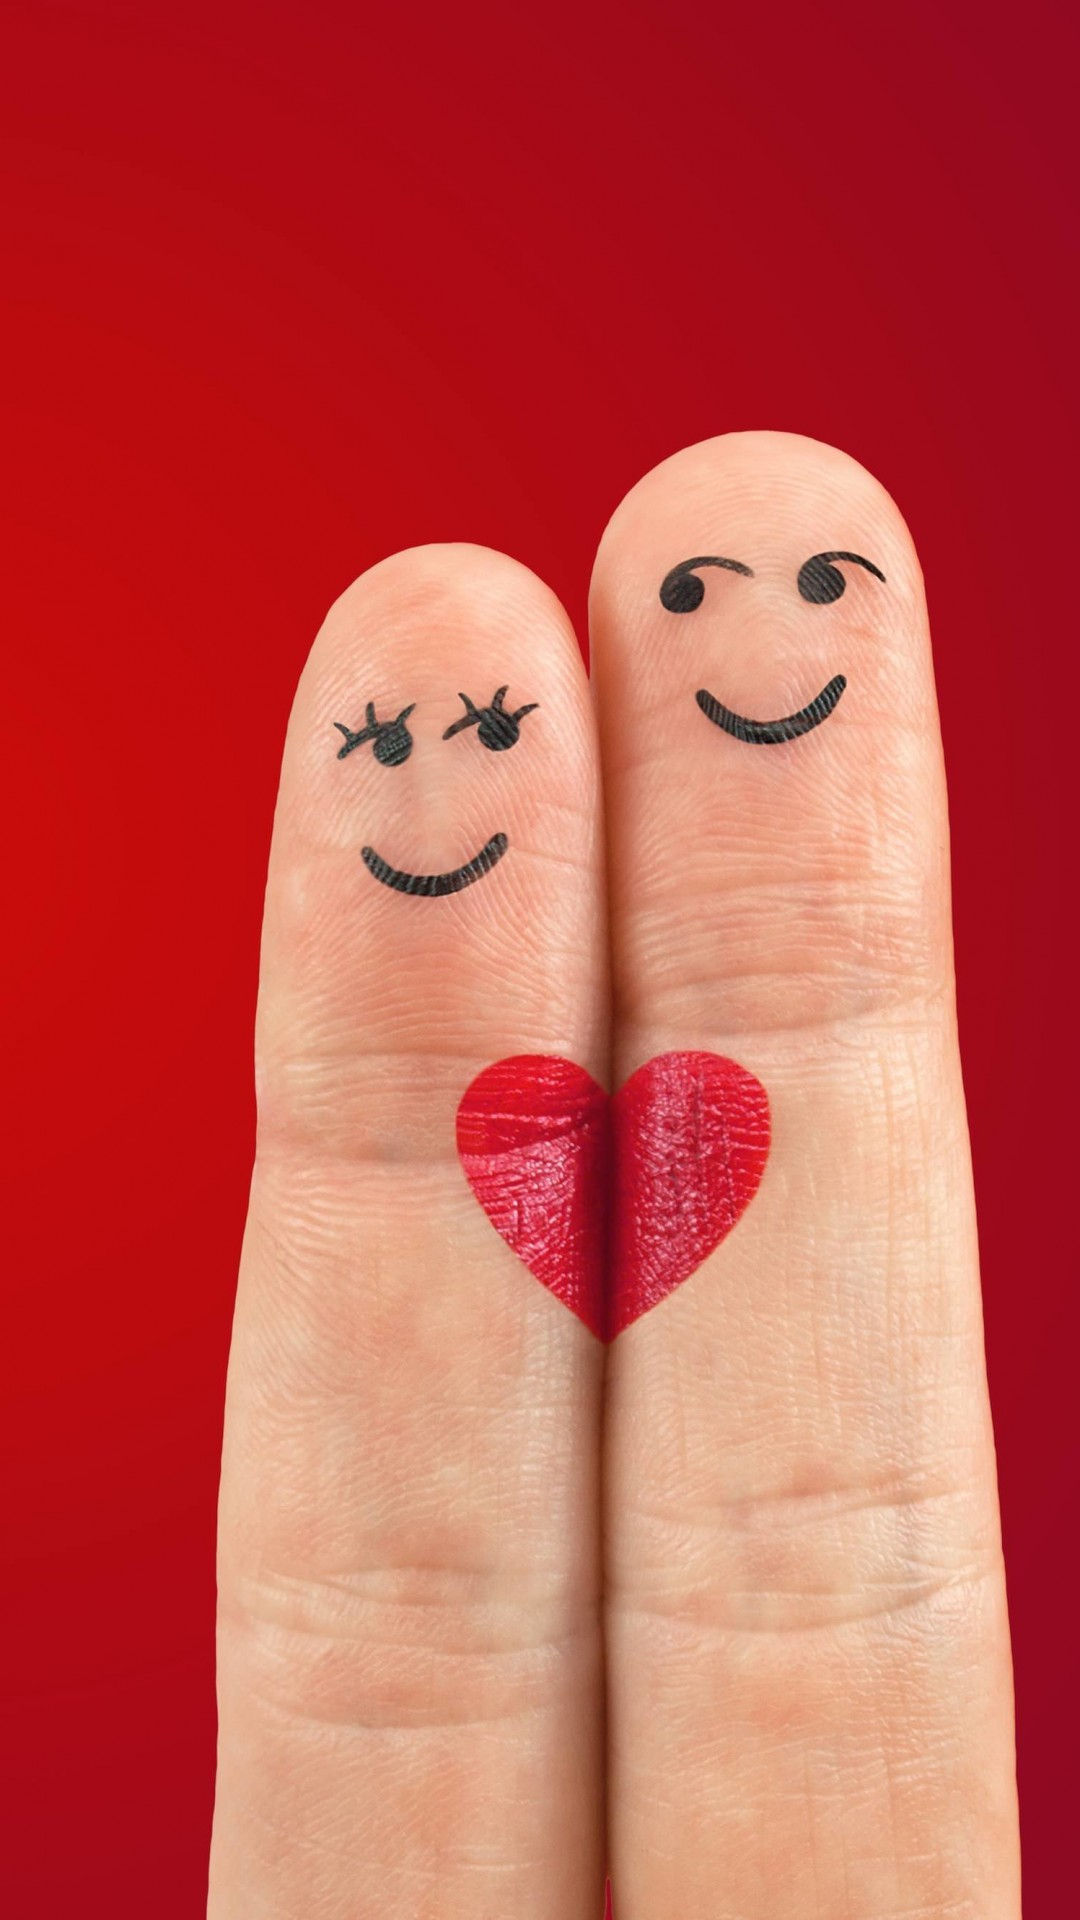 Fingers in Love Wallpaper for SAMSUNG Galaxy S5